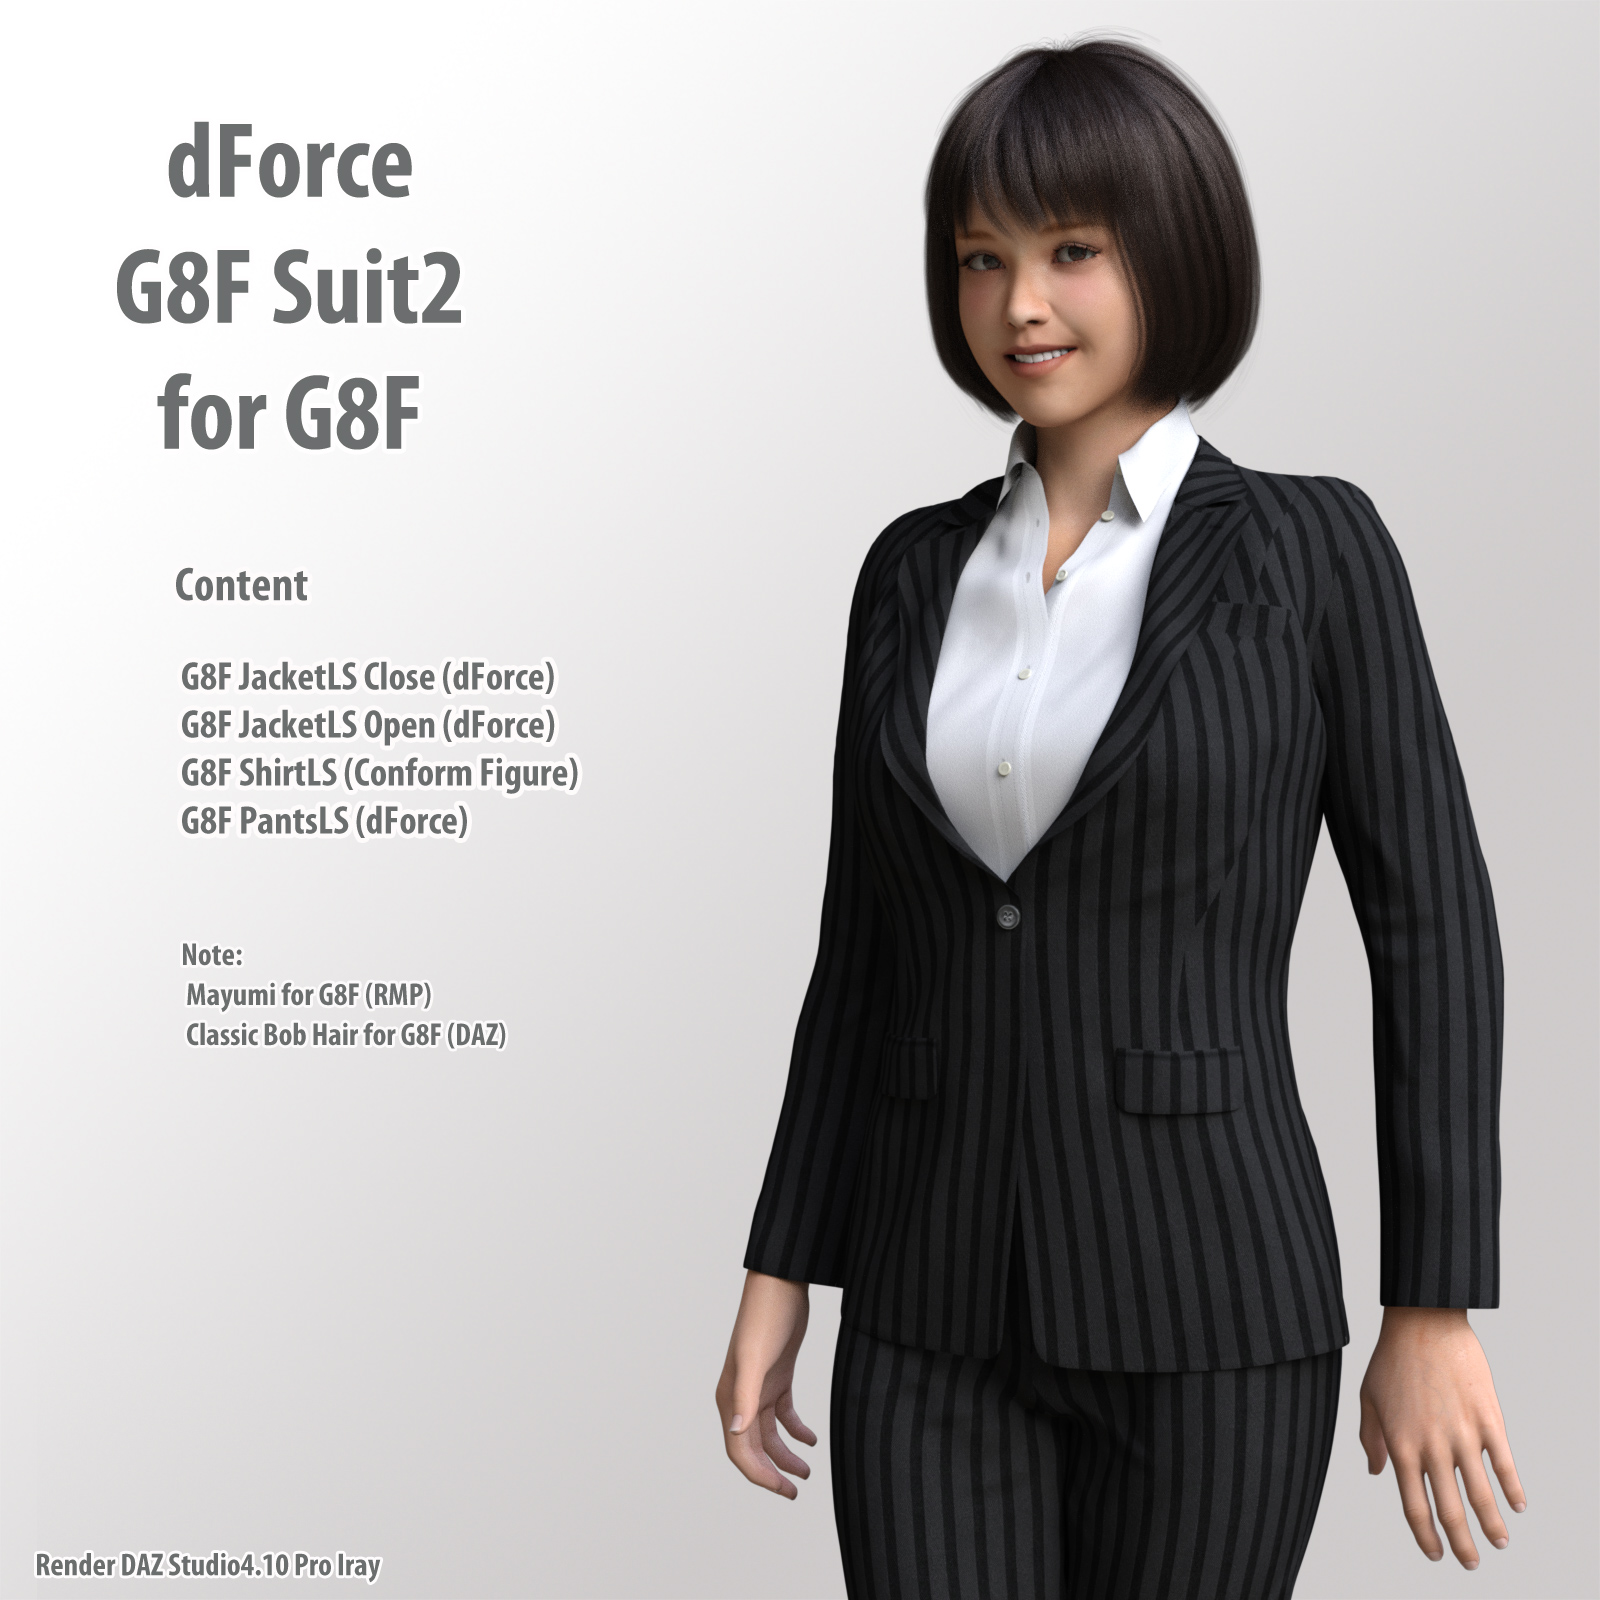 dForce G8F Suit2 for G8F - Extended License